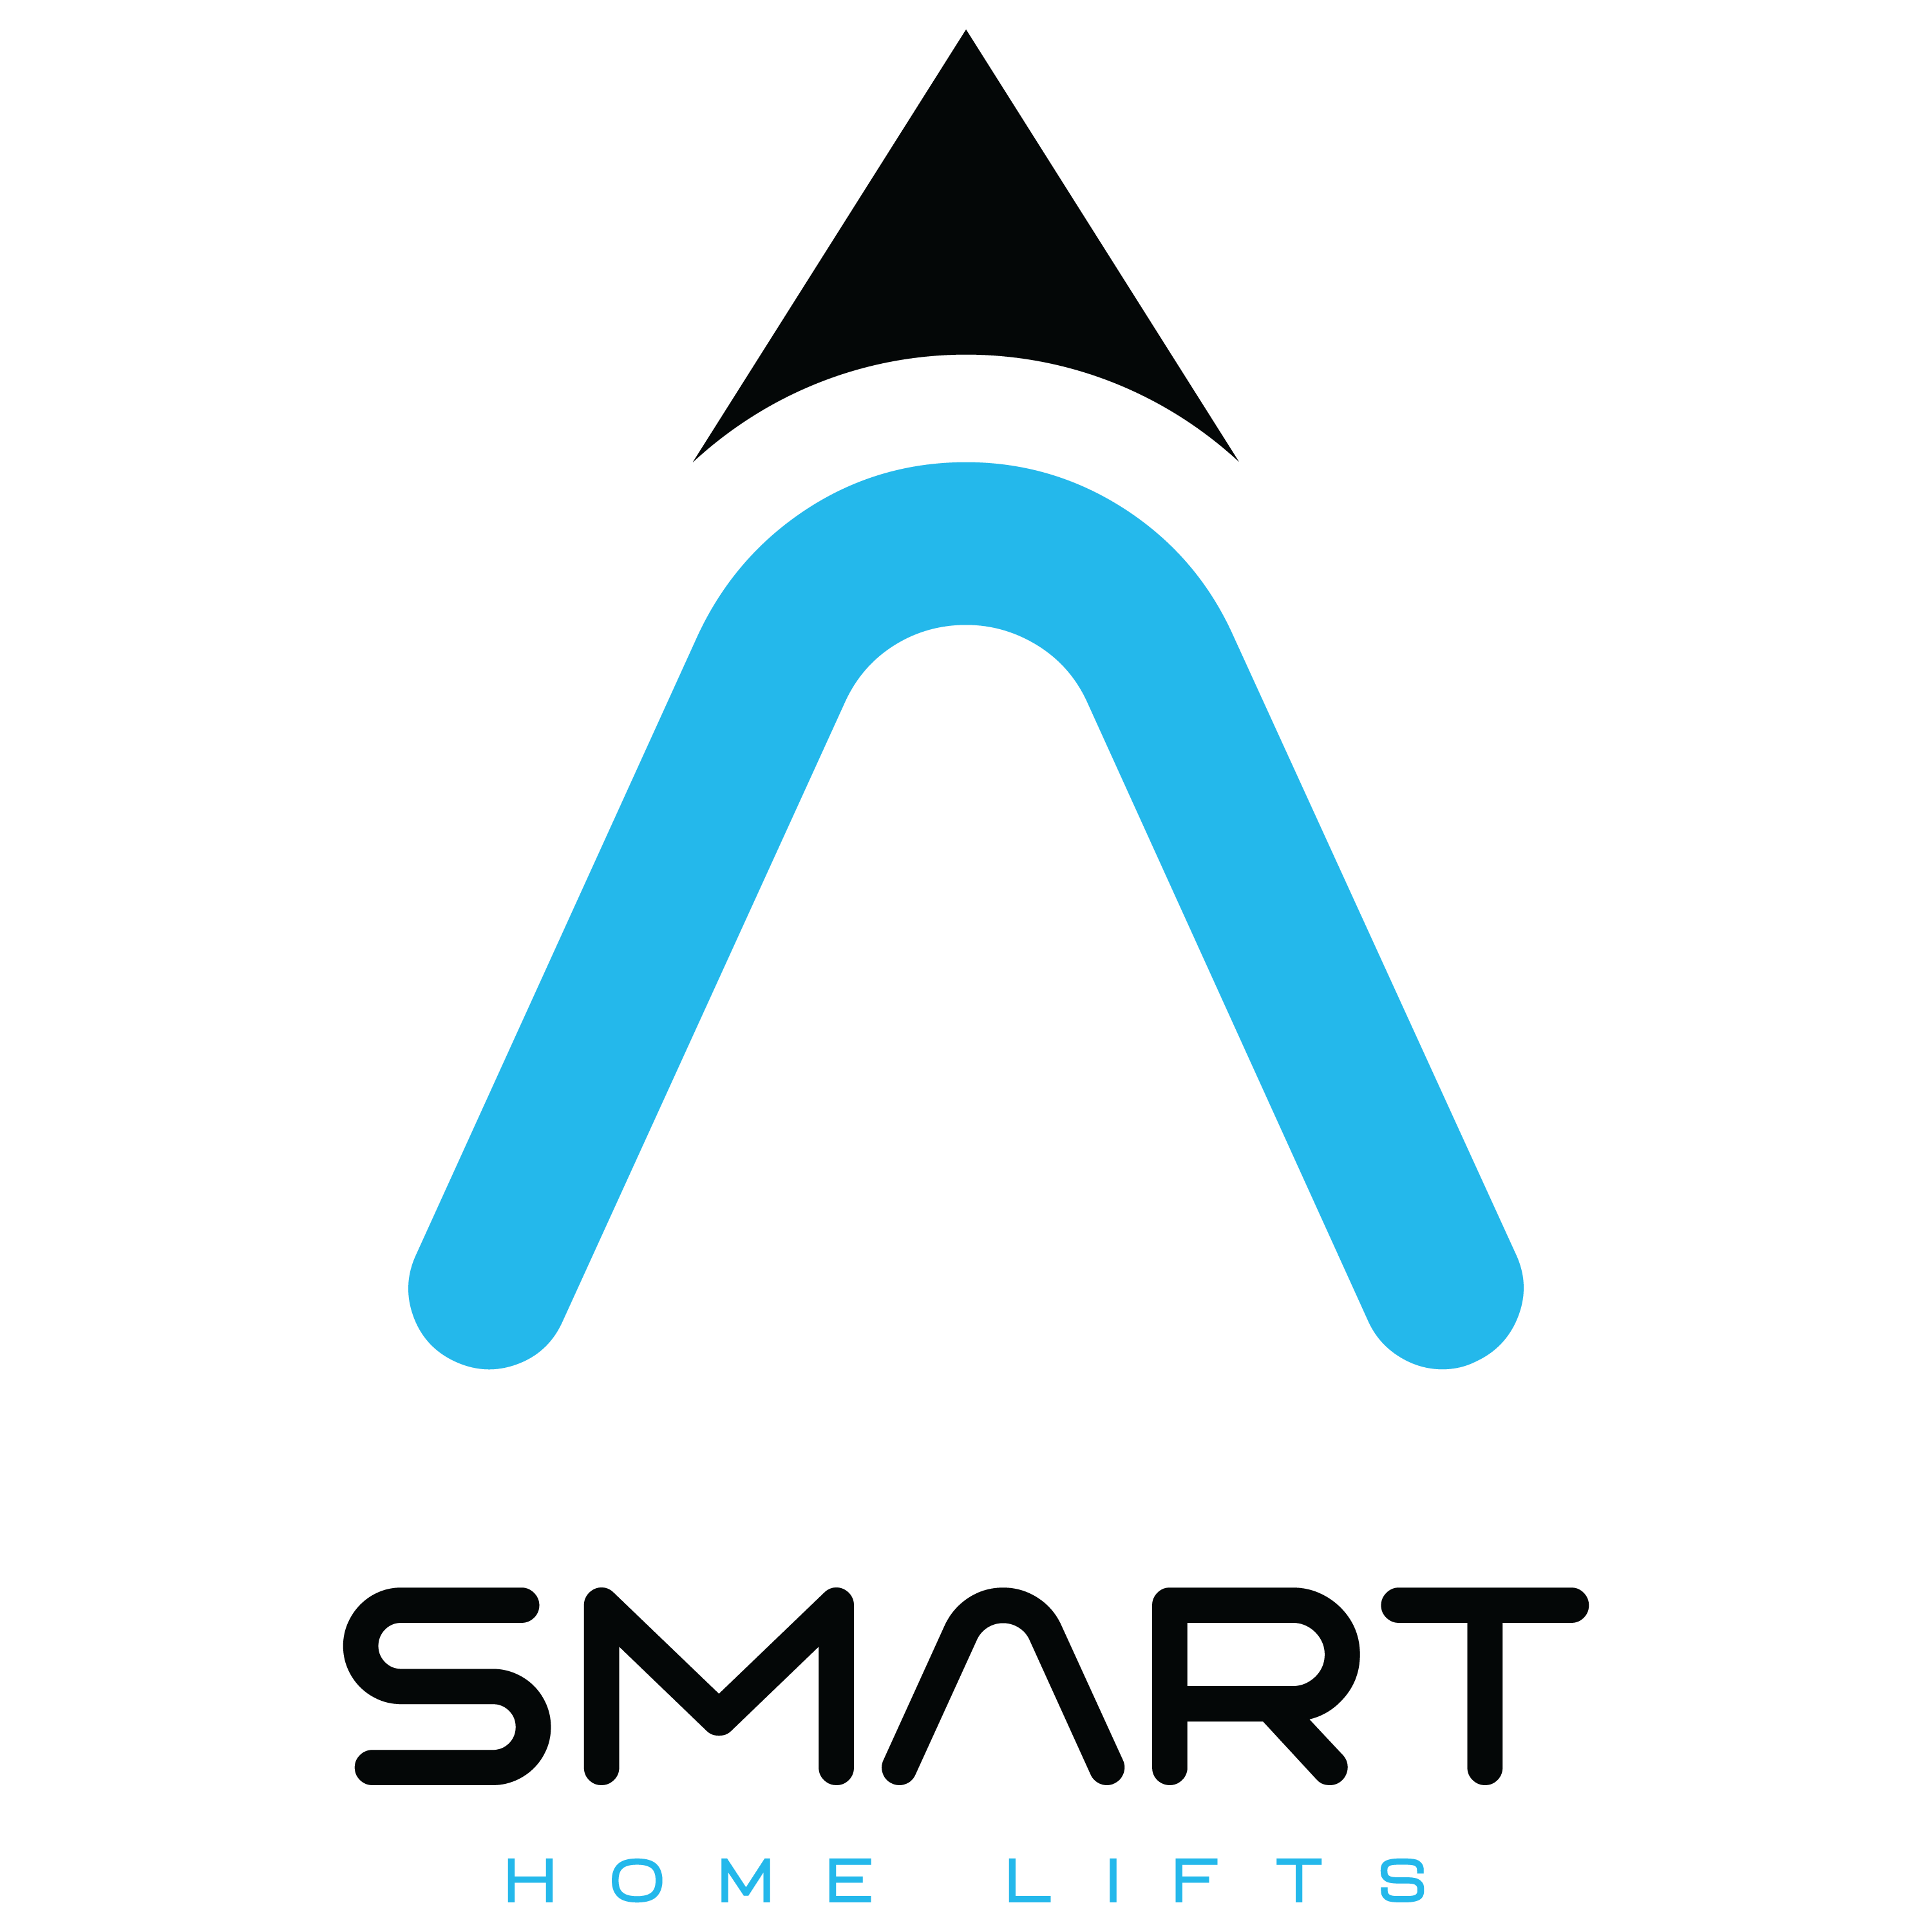 Smart Home Lifts